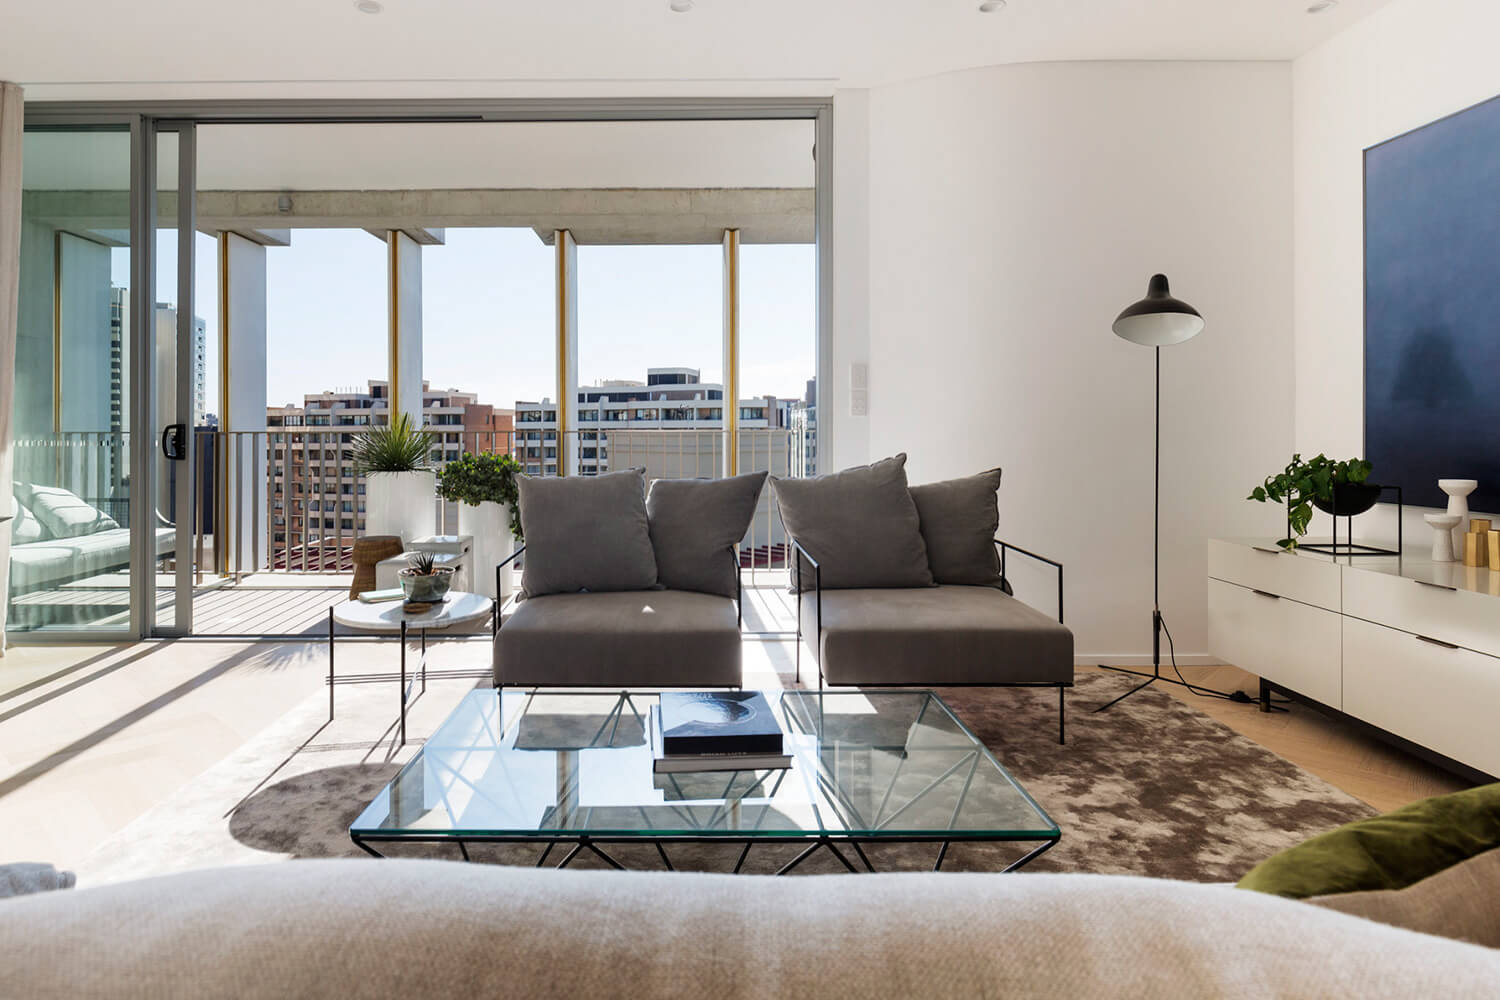 est-living-open-house-surry-hills-roof-top-apartment-bresic-whitney-16